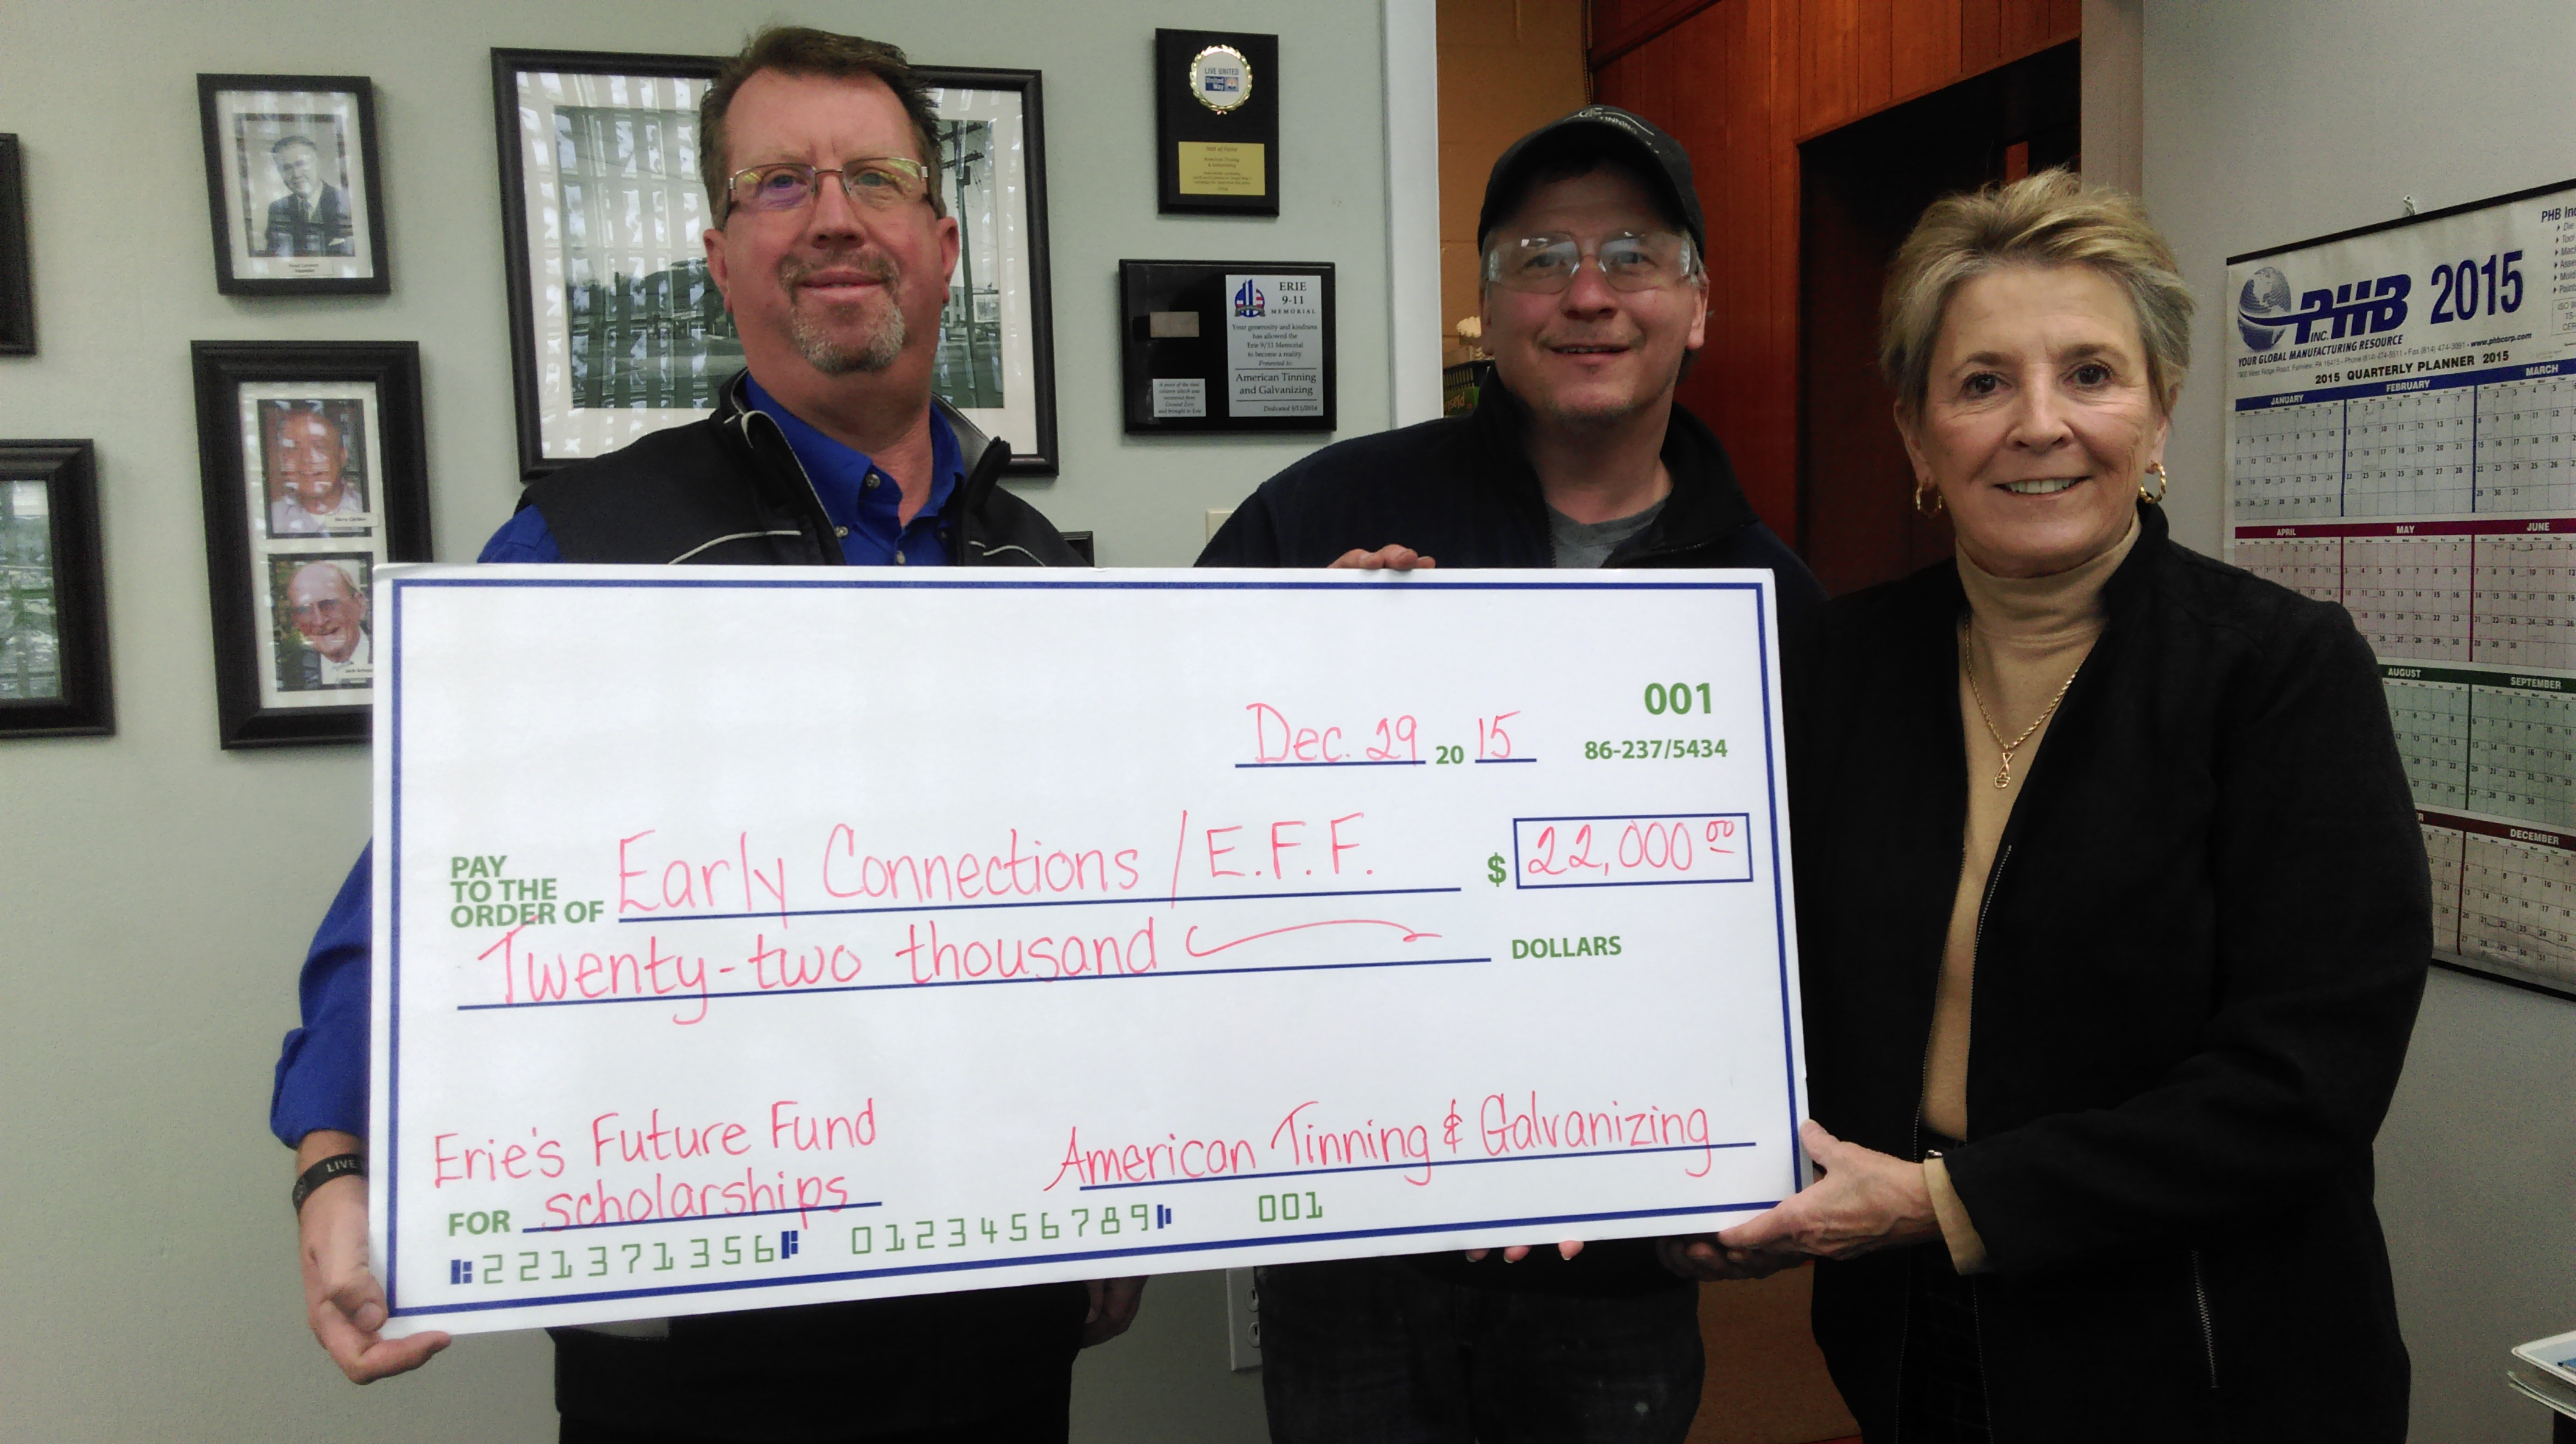 Thank You American Tinning and Galvanizing! | Erie's Future Fund